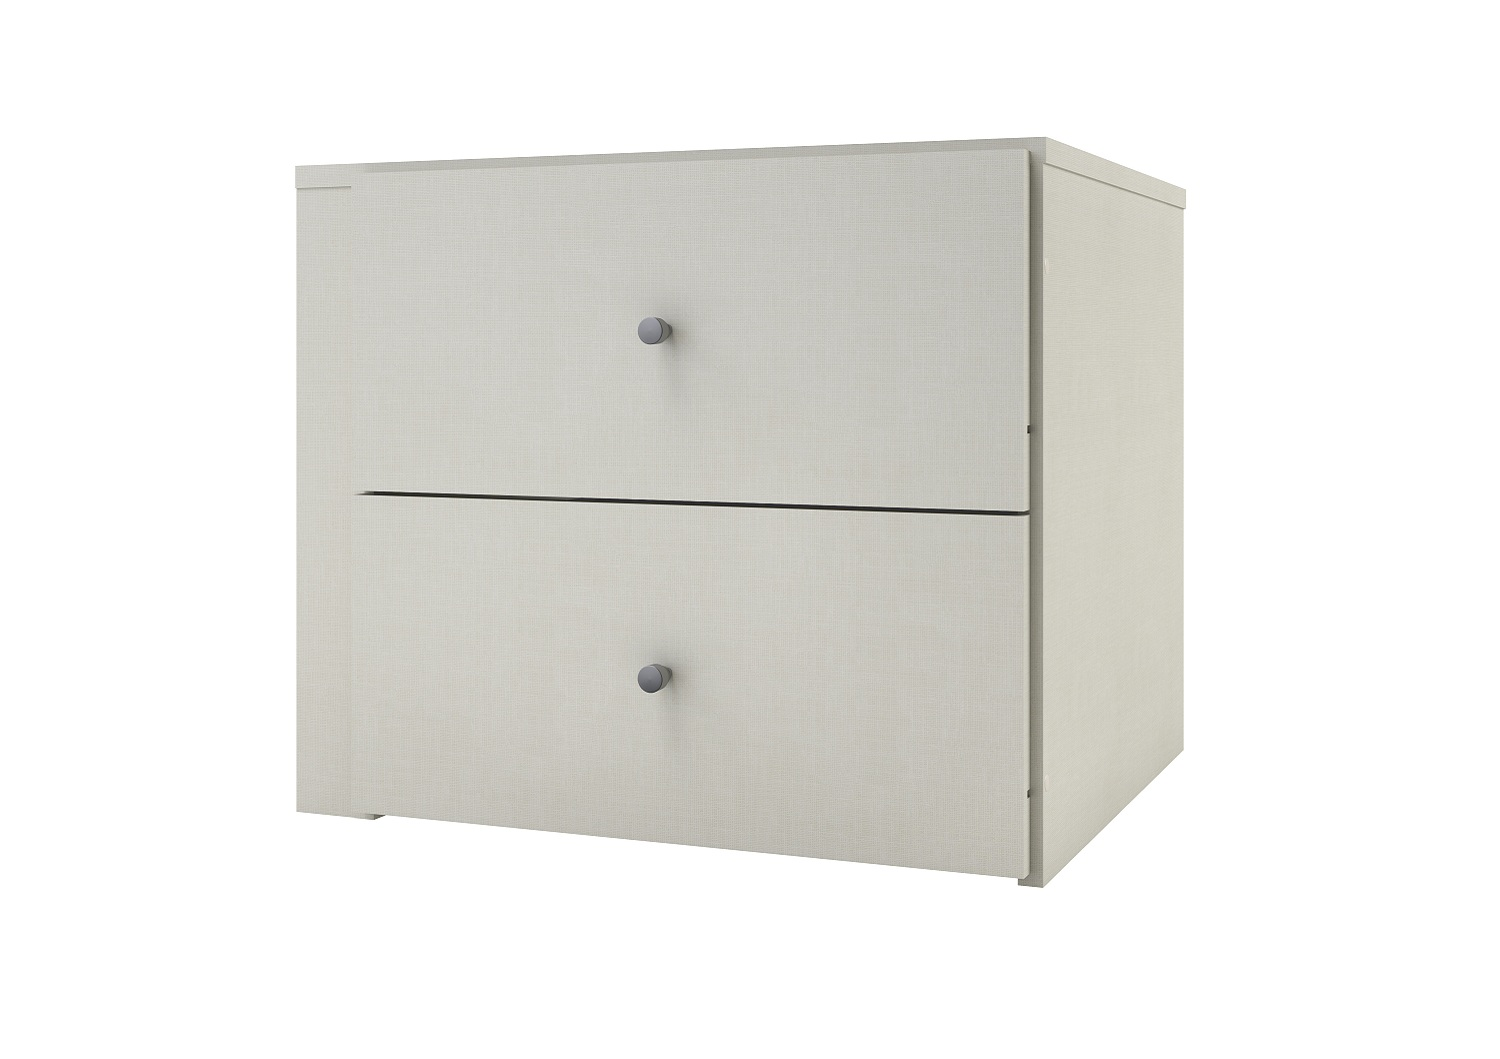 Bilrich Storage Furniture - Perfect Wardrobe Optional Internal Drawer